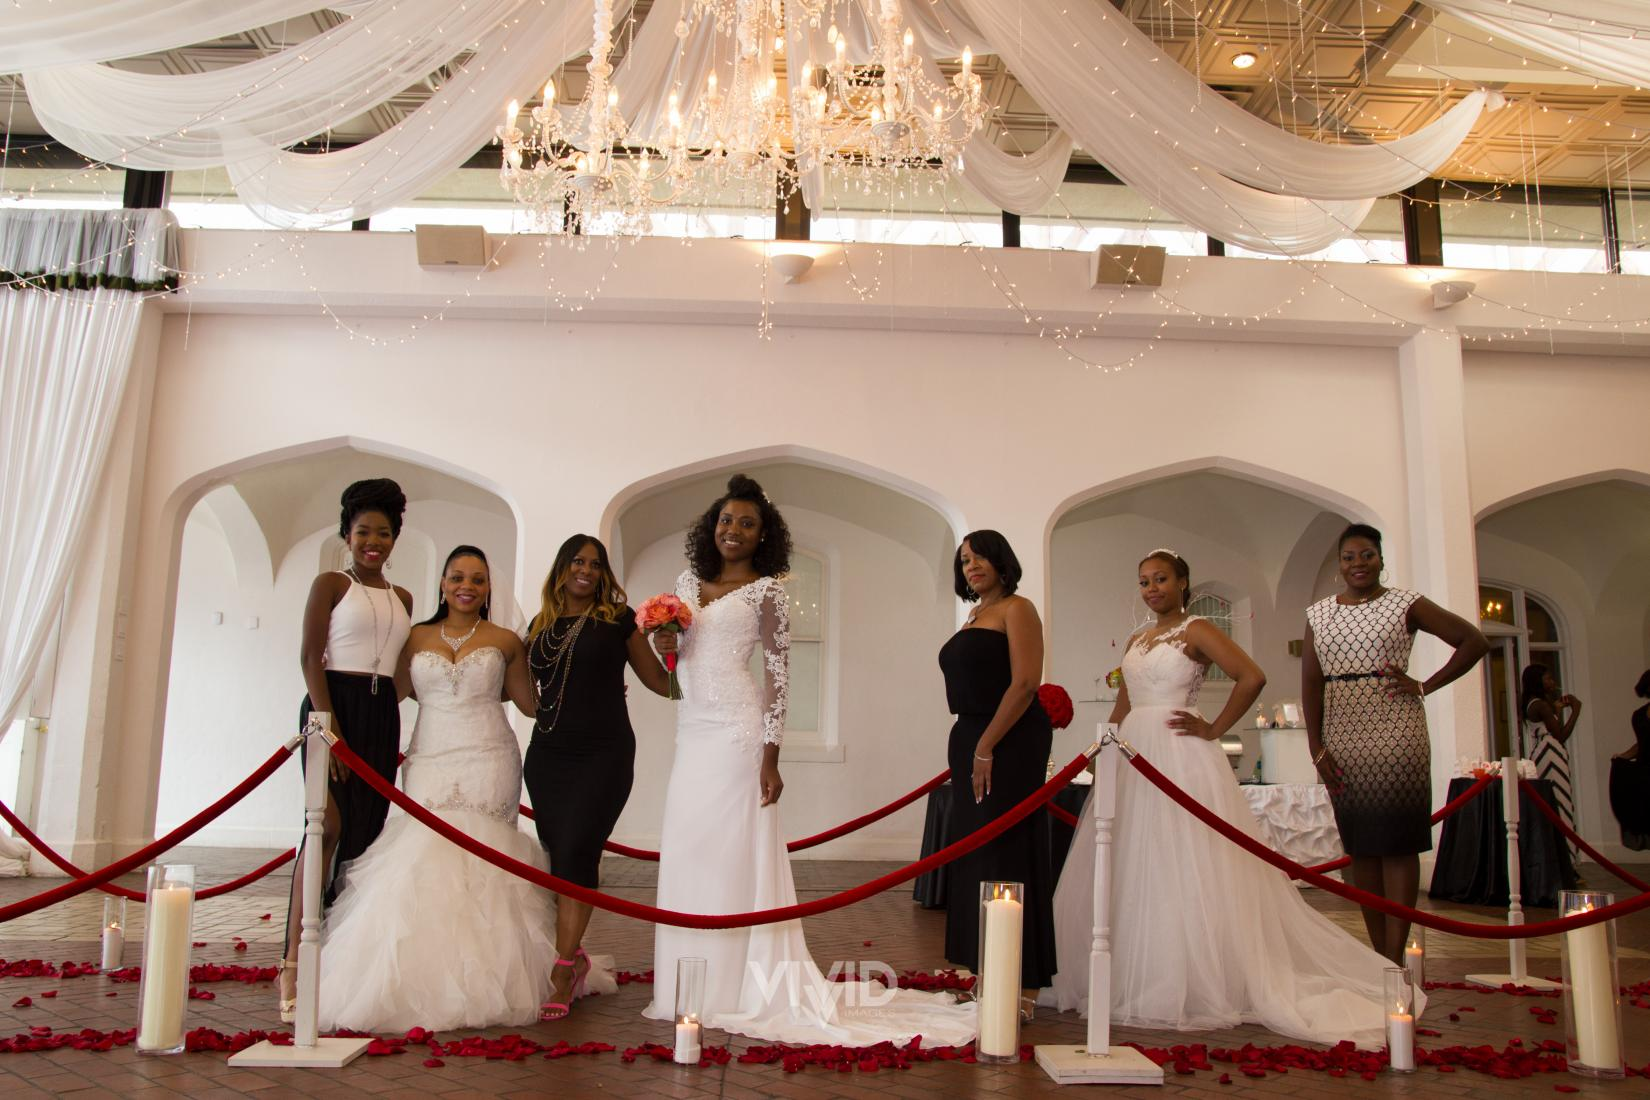 Bridal Show Models and Team